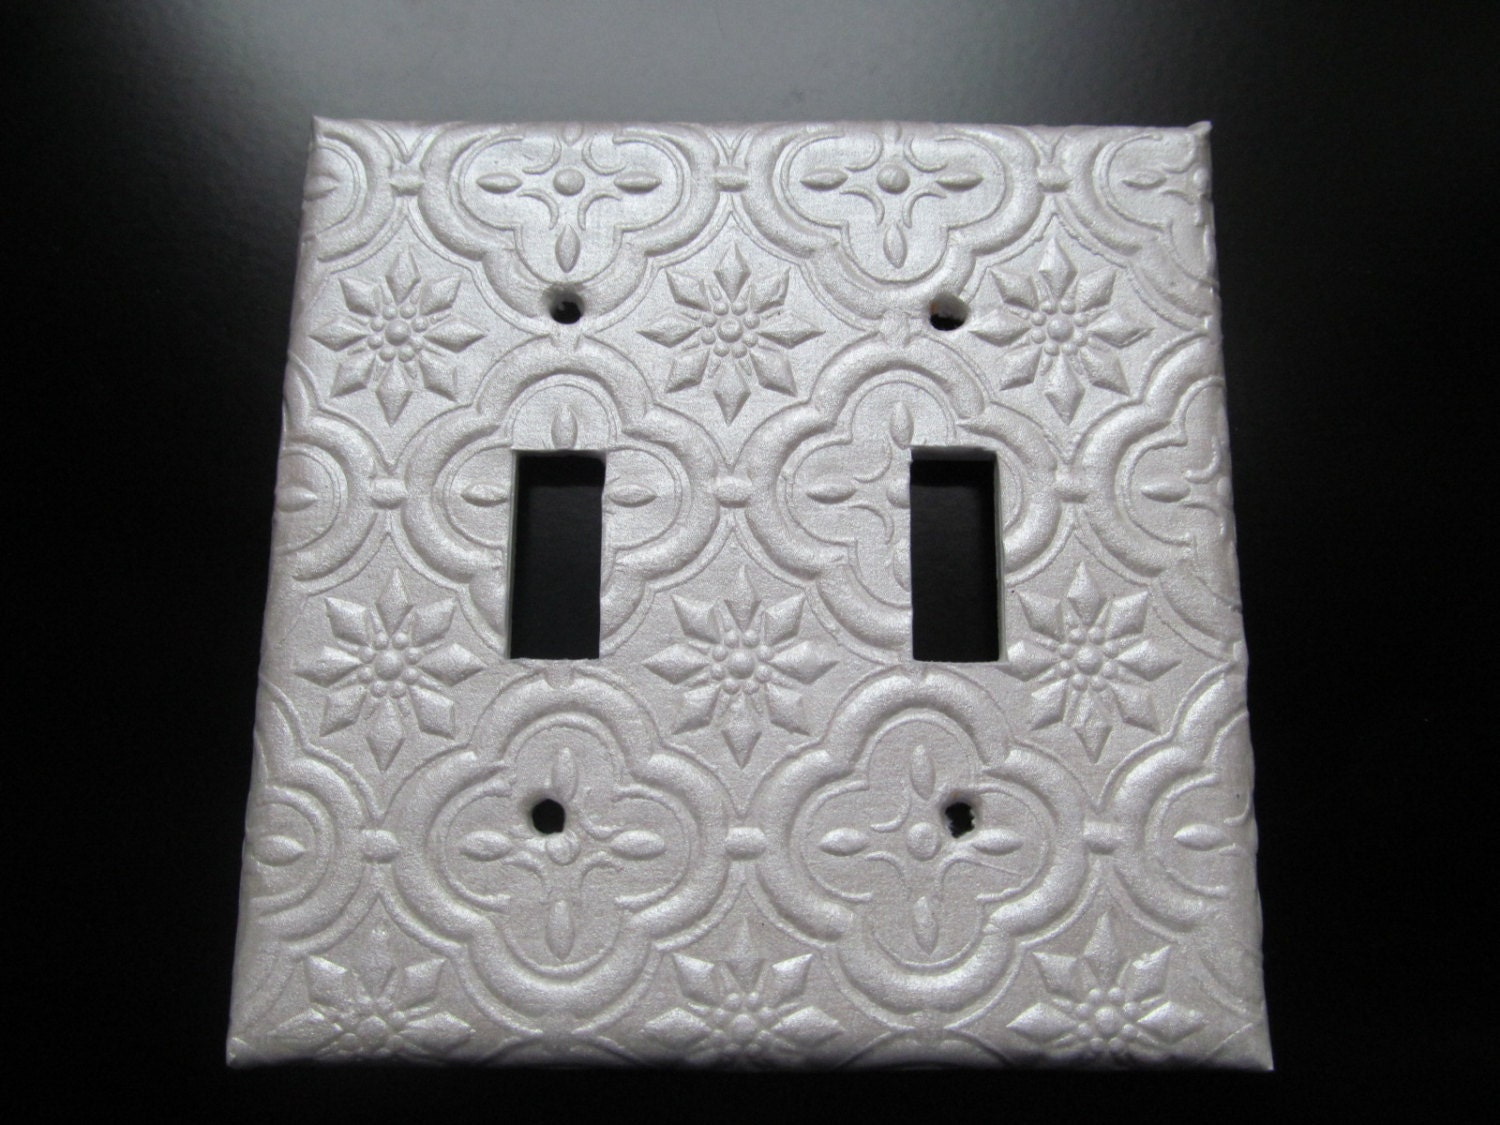 Handmade Decorative Light Switch Covers Plates Textured